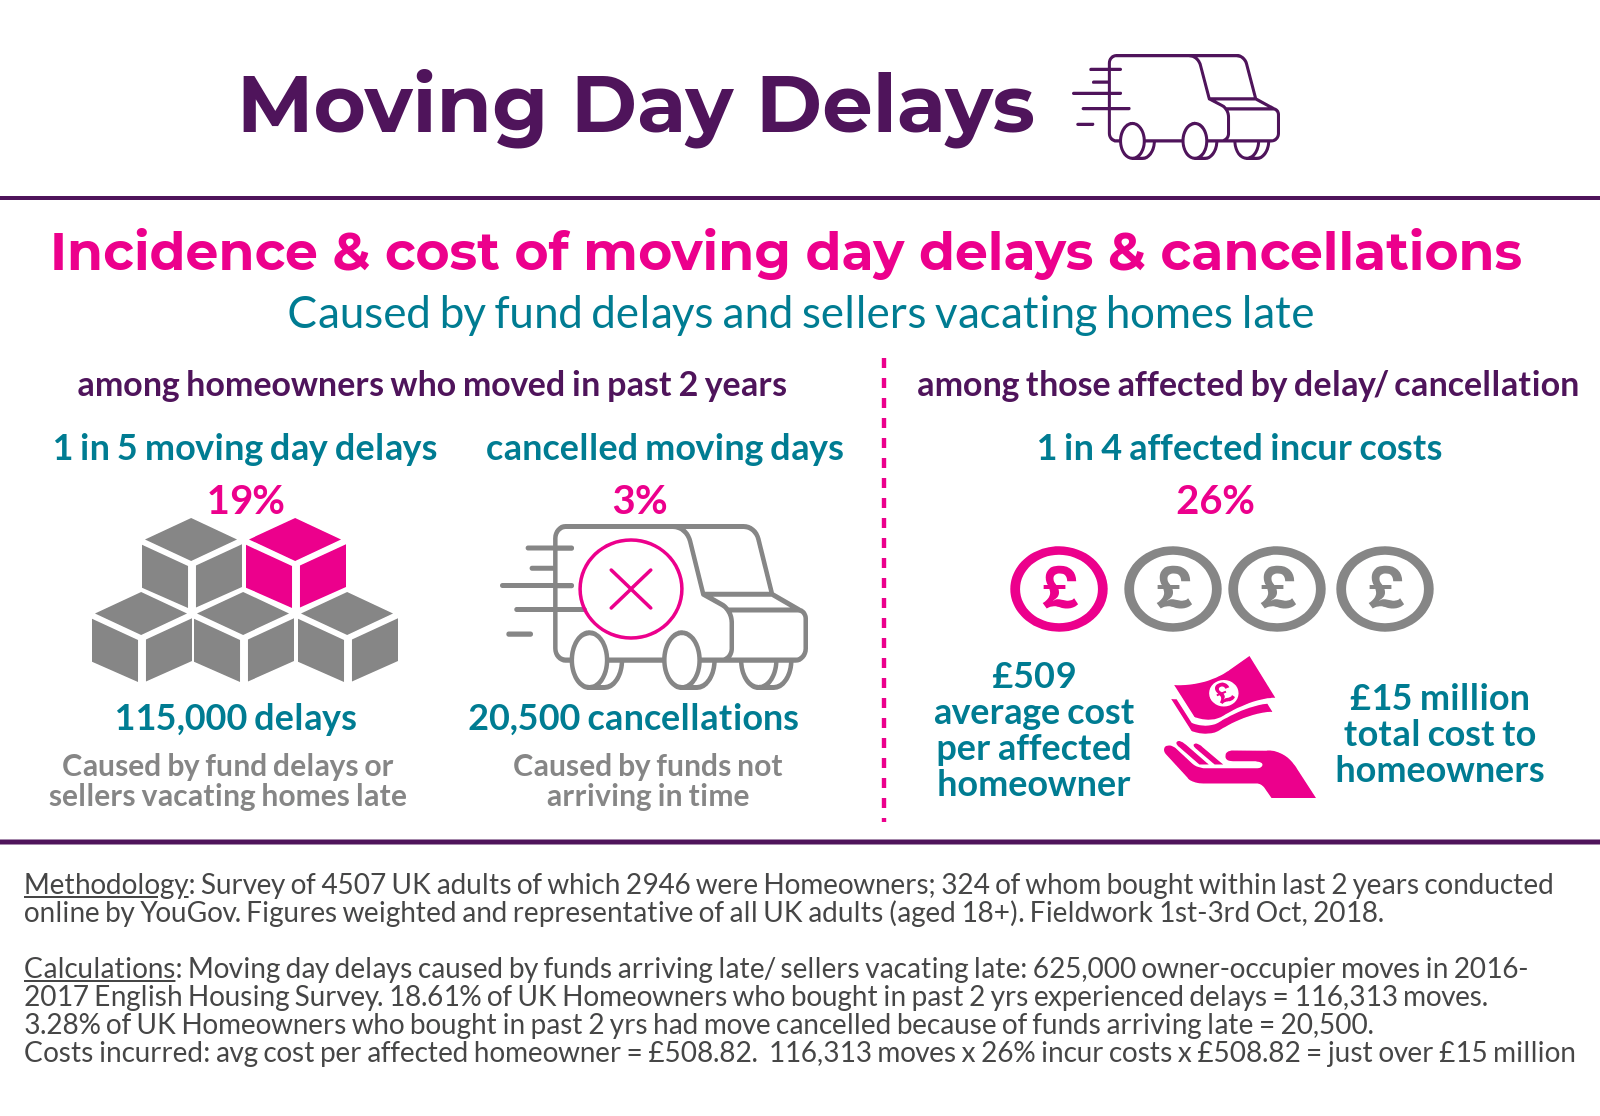 Moving day delays & cancellations